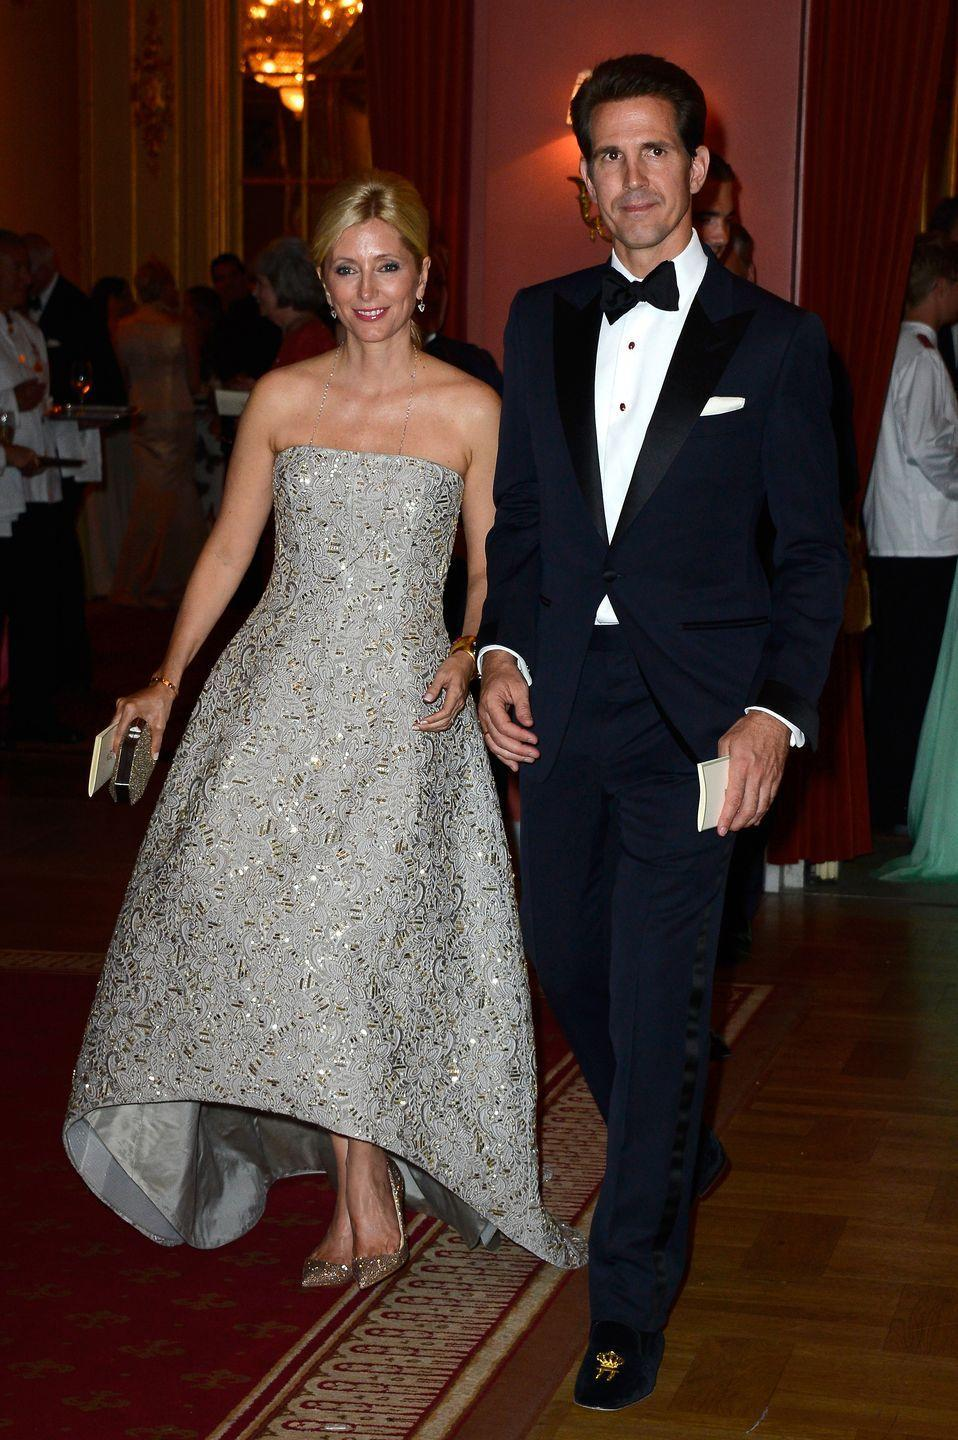 <p>Since 2000, she's operated an upscale children's line called Marie-Chantal. She's pictured here in Valentino for the wedding of her husband's cousin, Princess Madeleine of Sweden. </p>